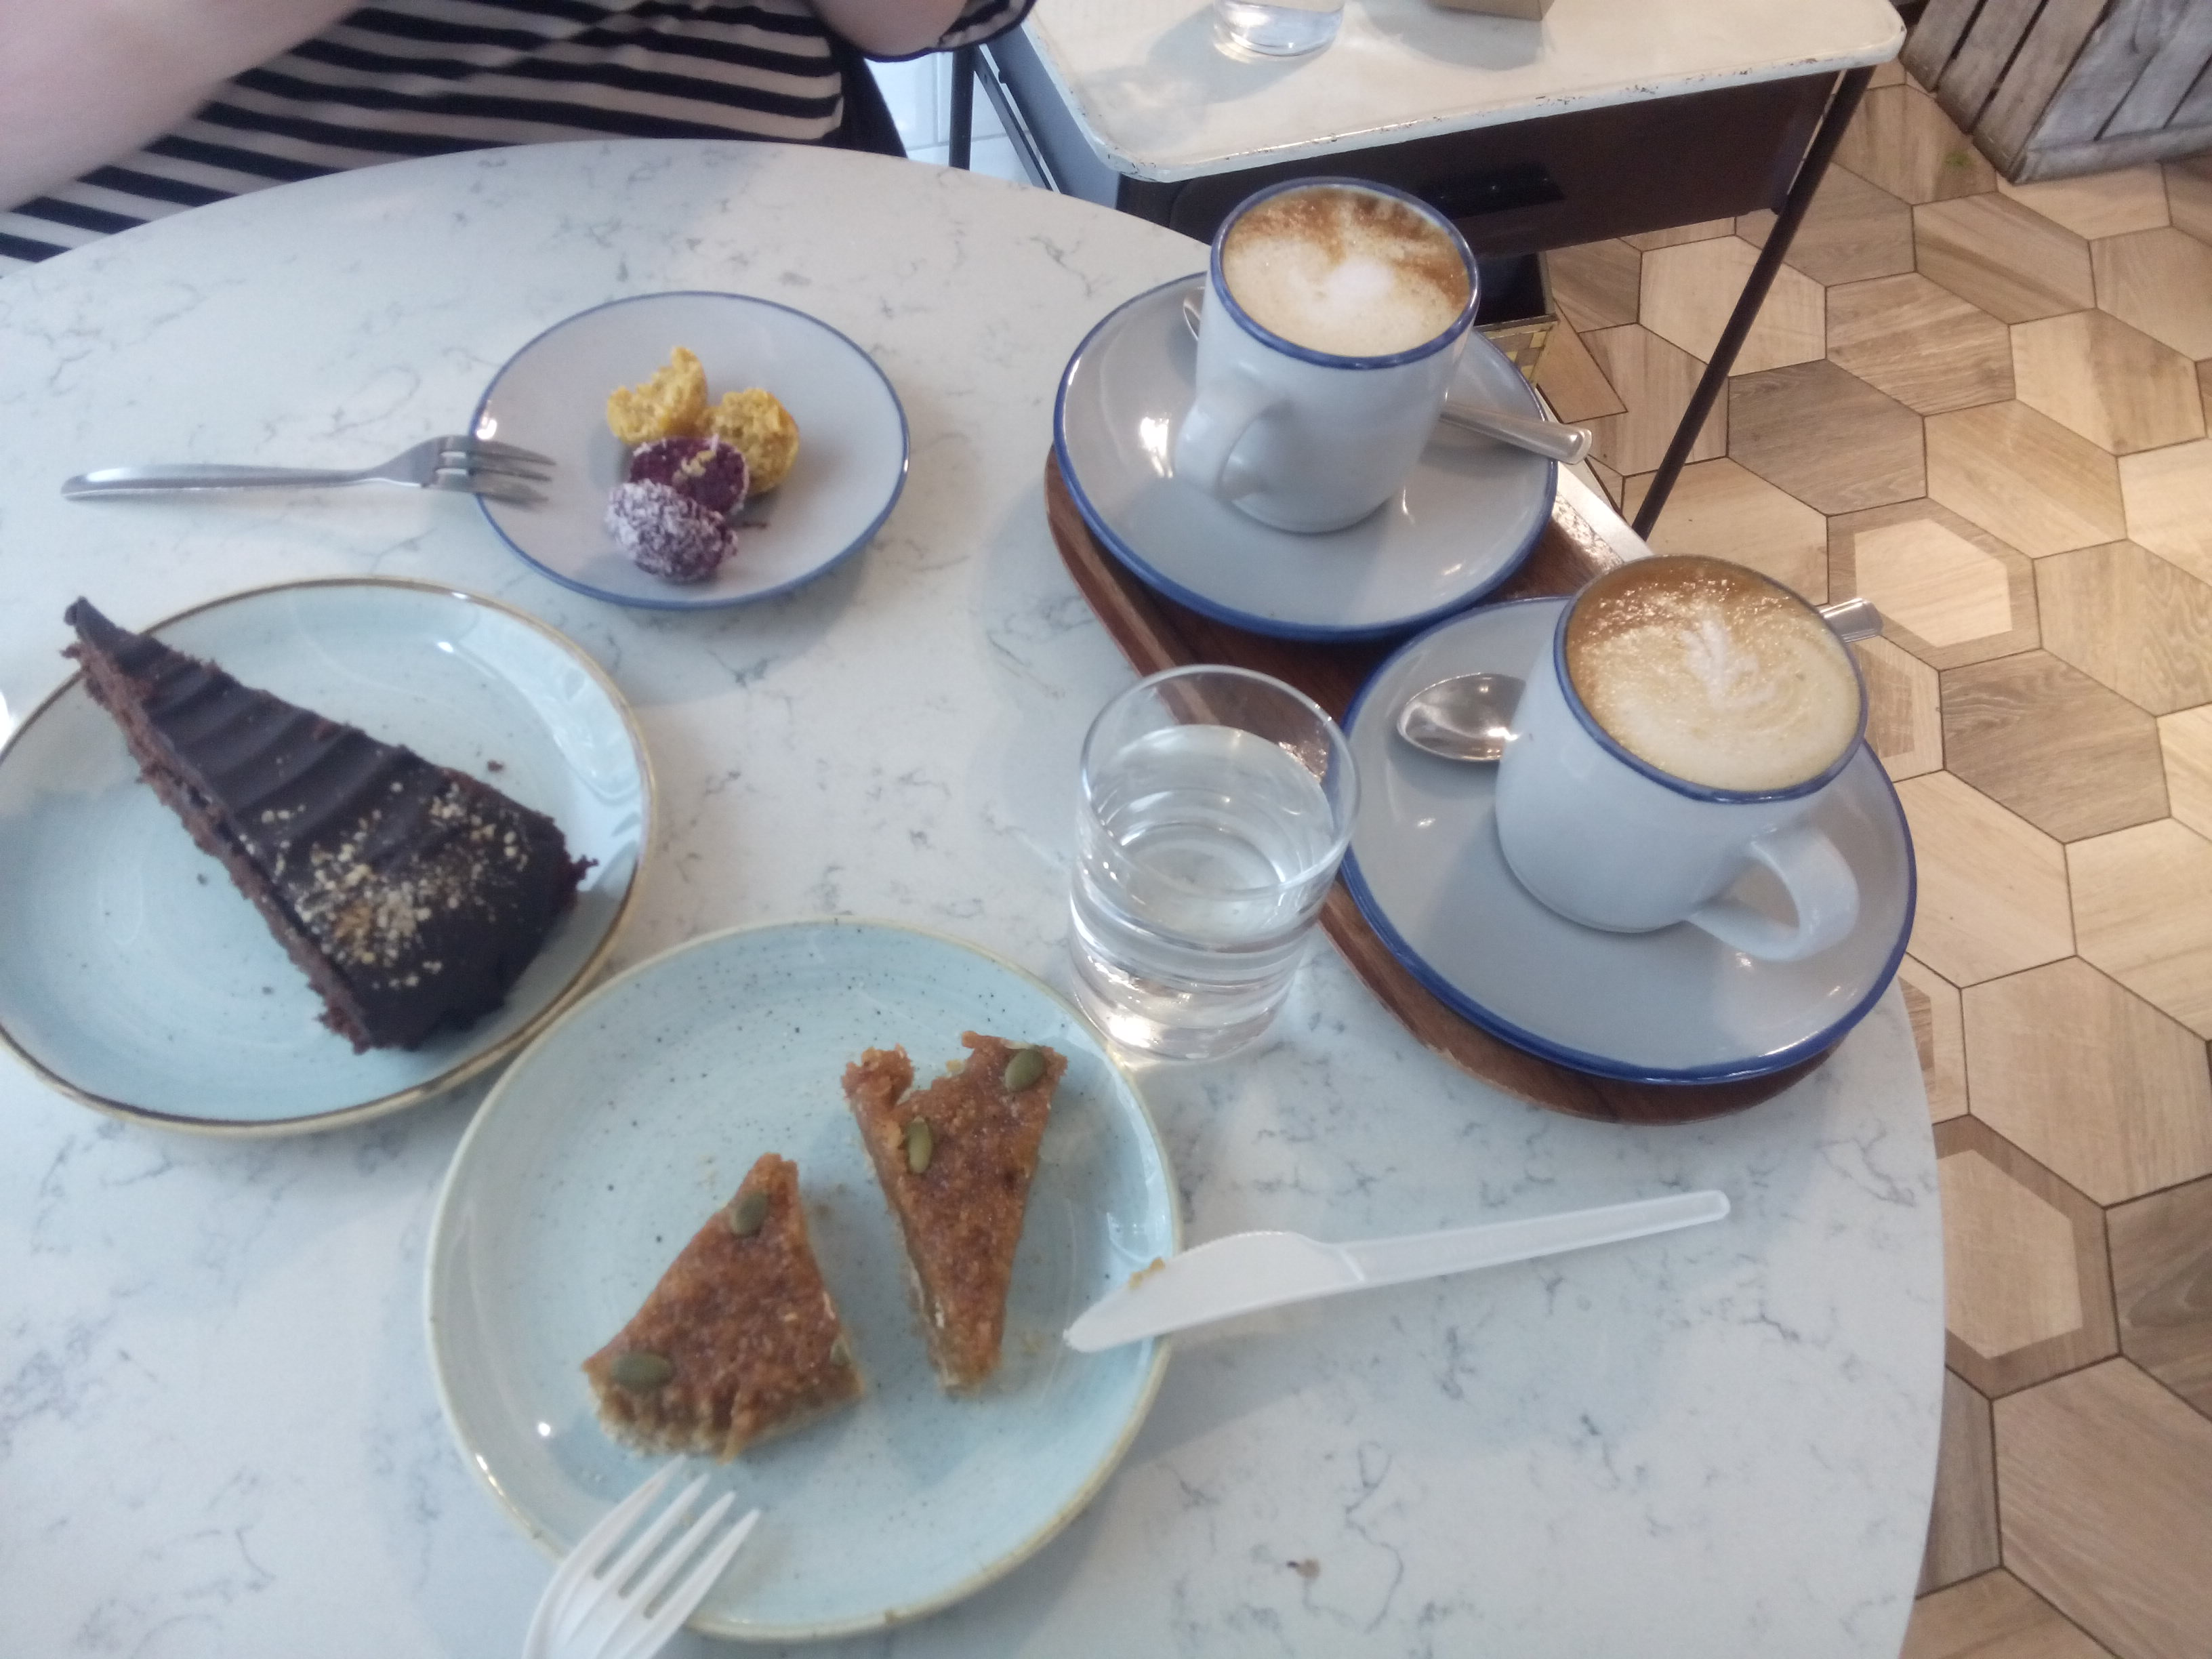 A table covered in plates of cake and two big cups of coffee